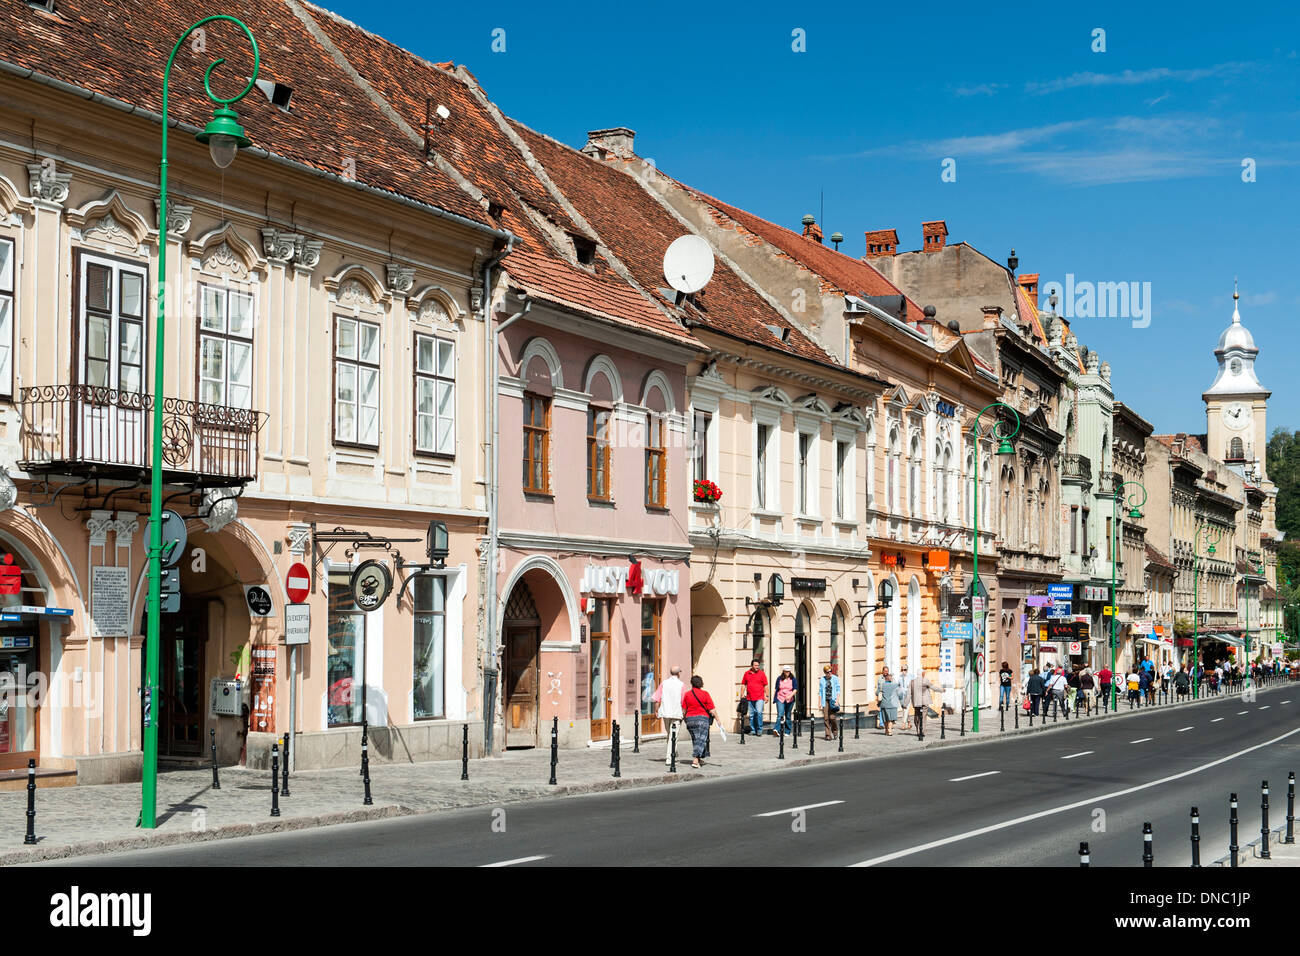 Buildings on George Baritiu street in the old town in Brasov, a city in the central Transylvania region of Romania. - Stock Image